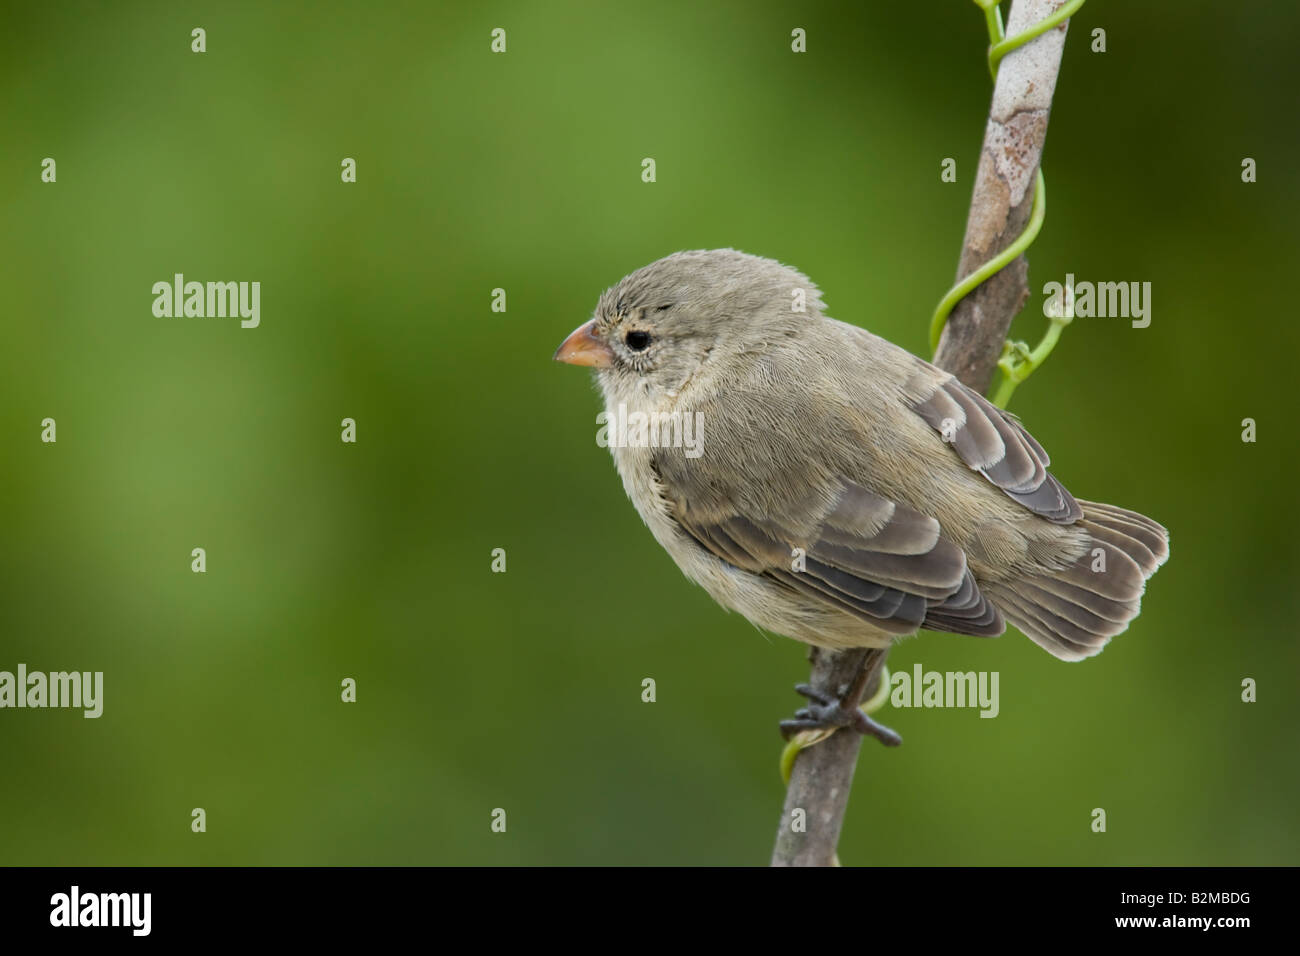 Darwin's Finches Medium Tree Finch - Stock Image